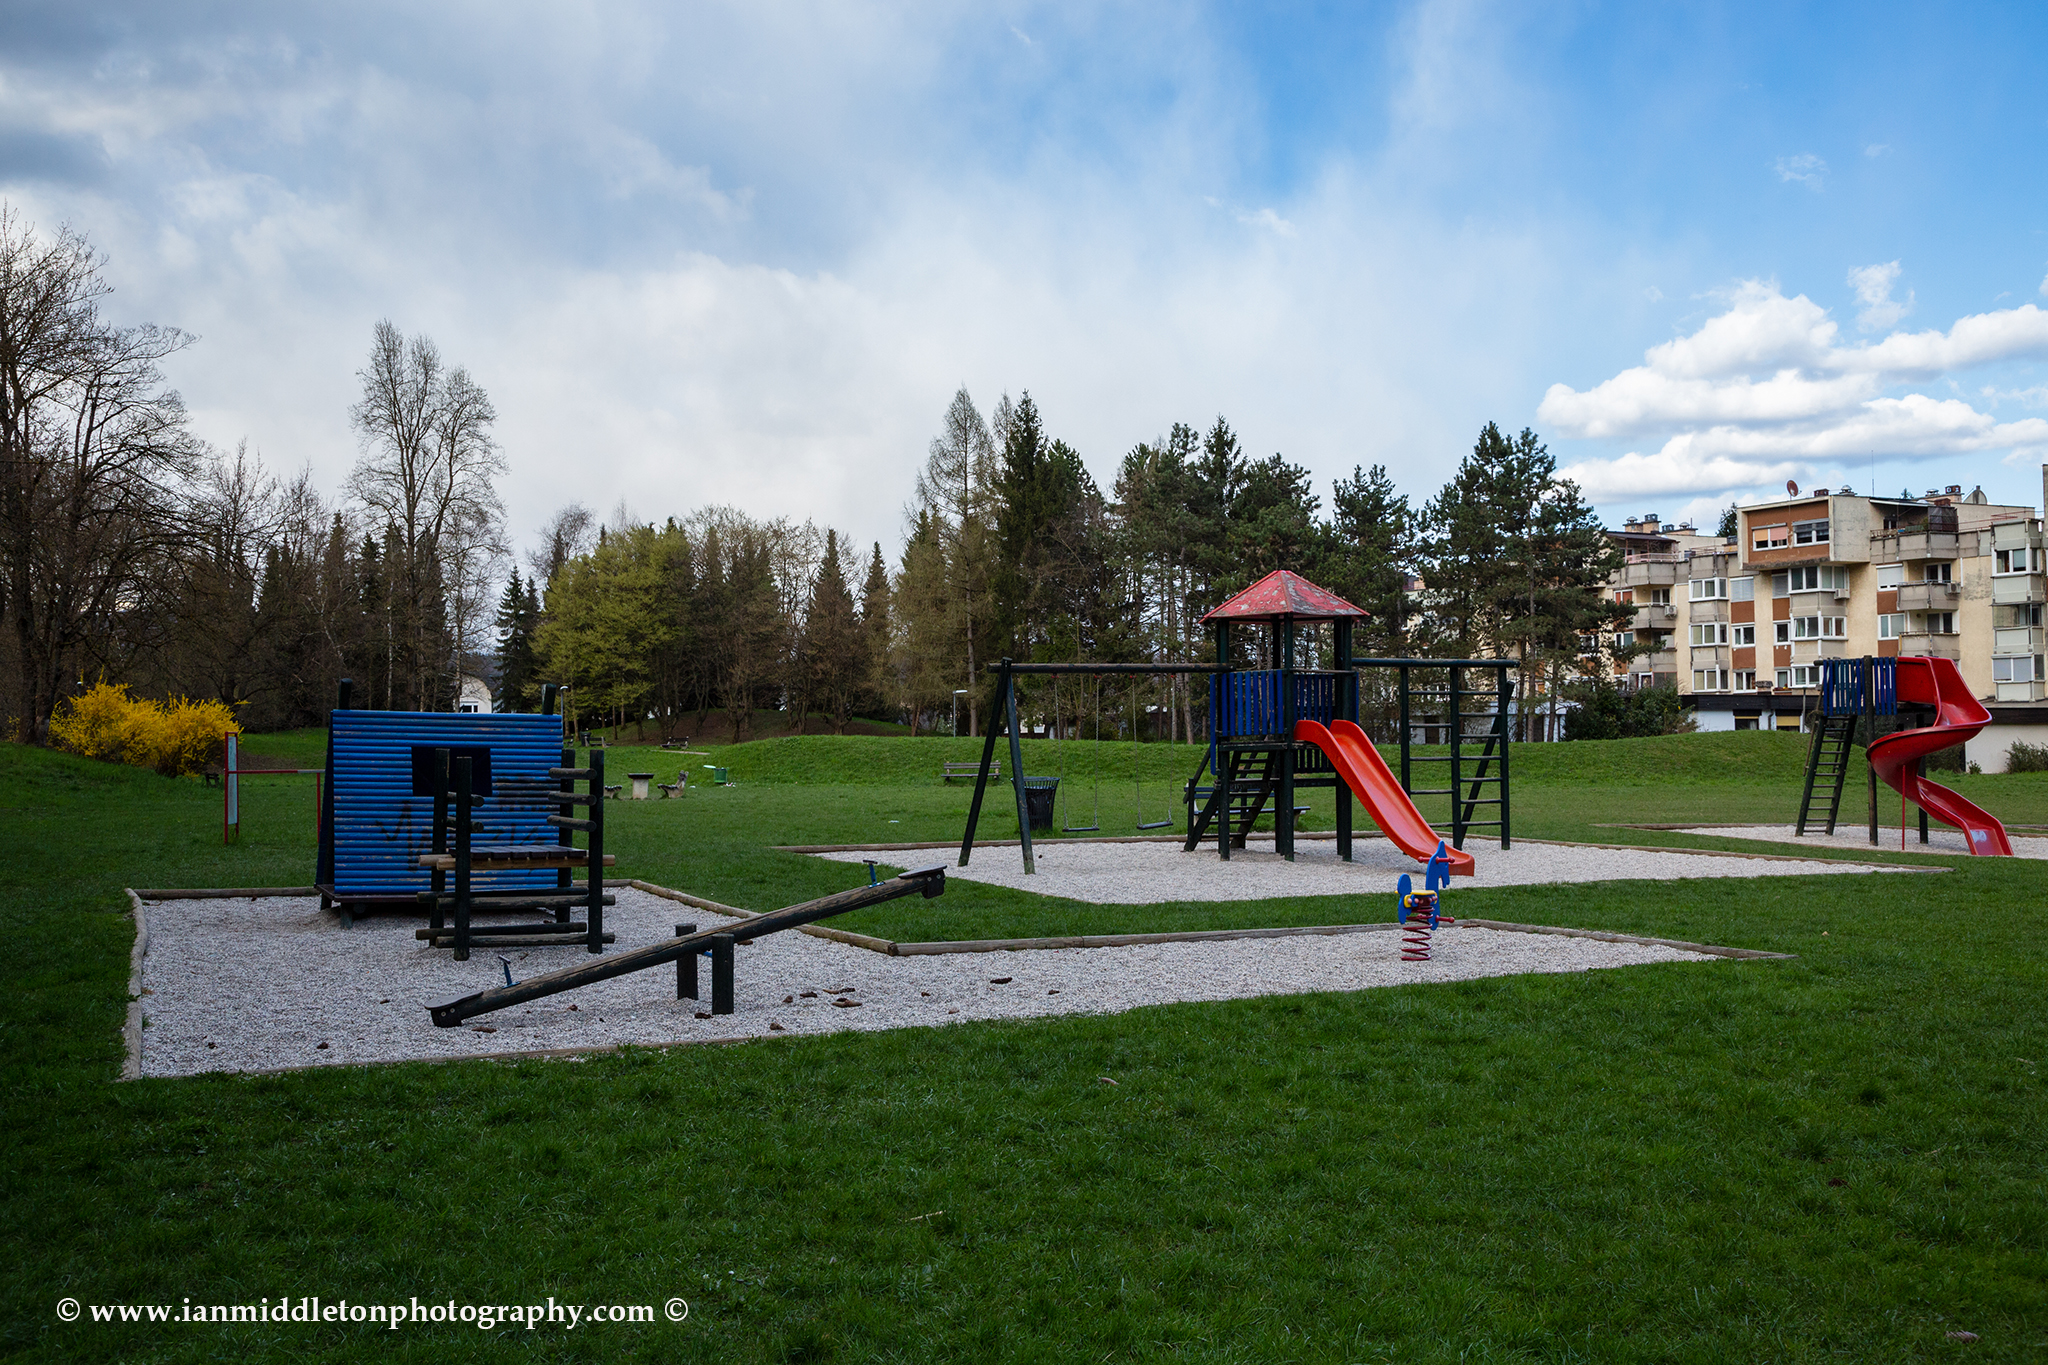 In Slovenia the government has forbidden the use of public playgrounds and all schools are closed.